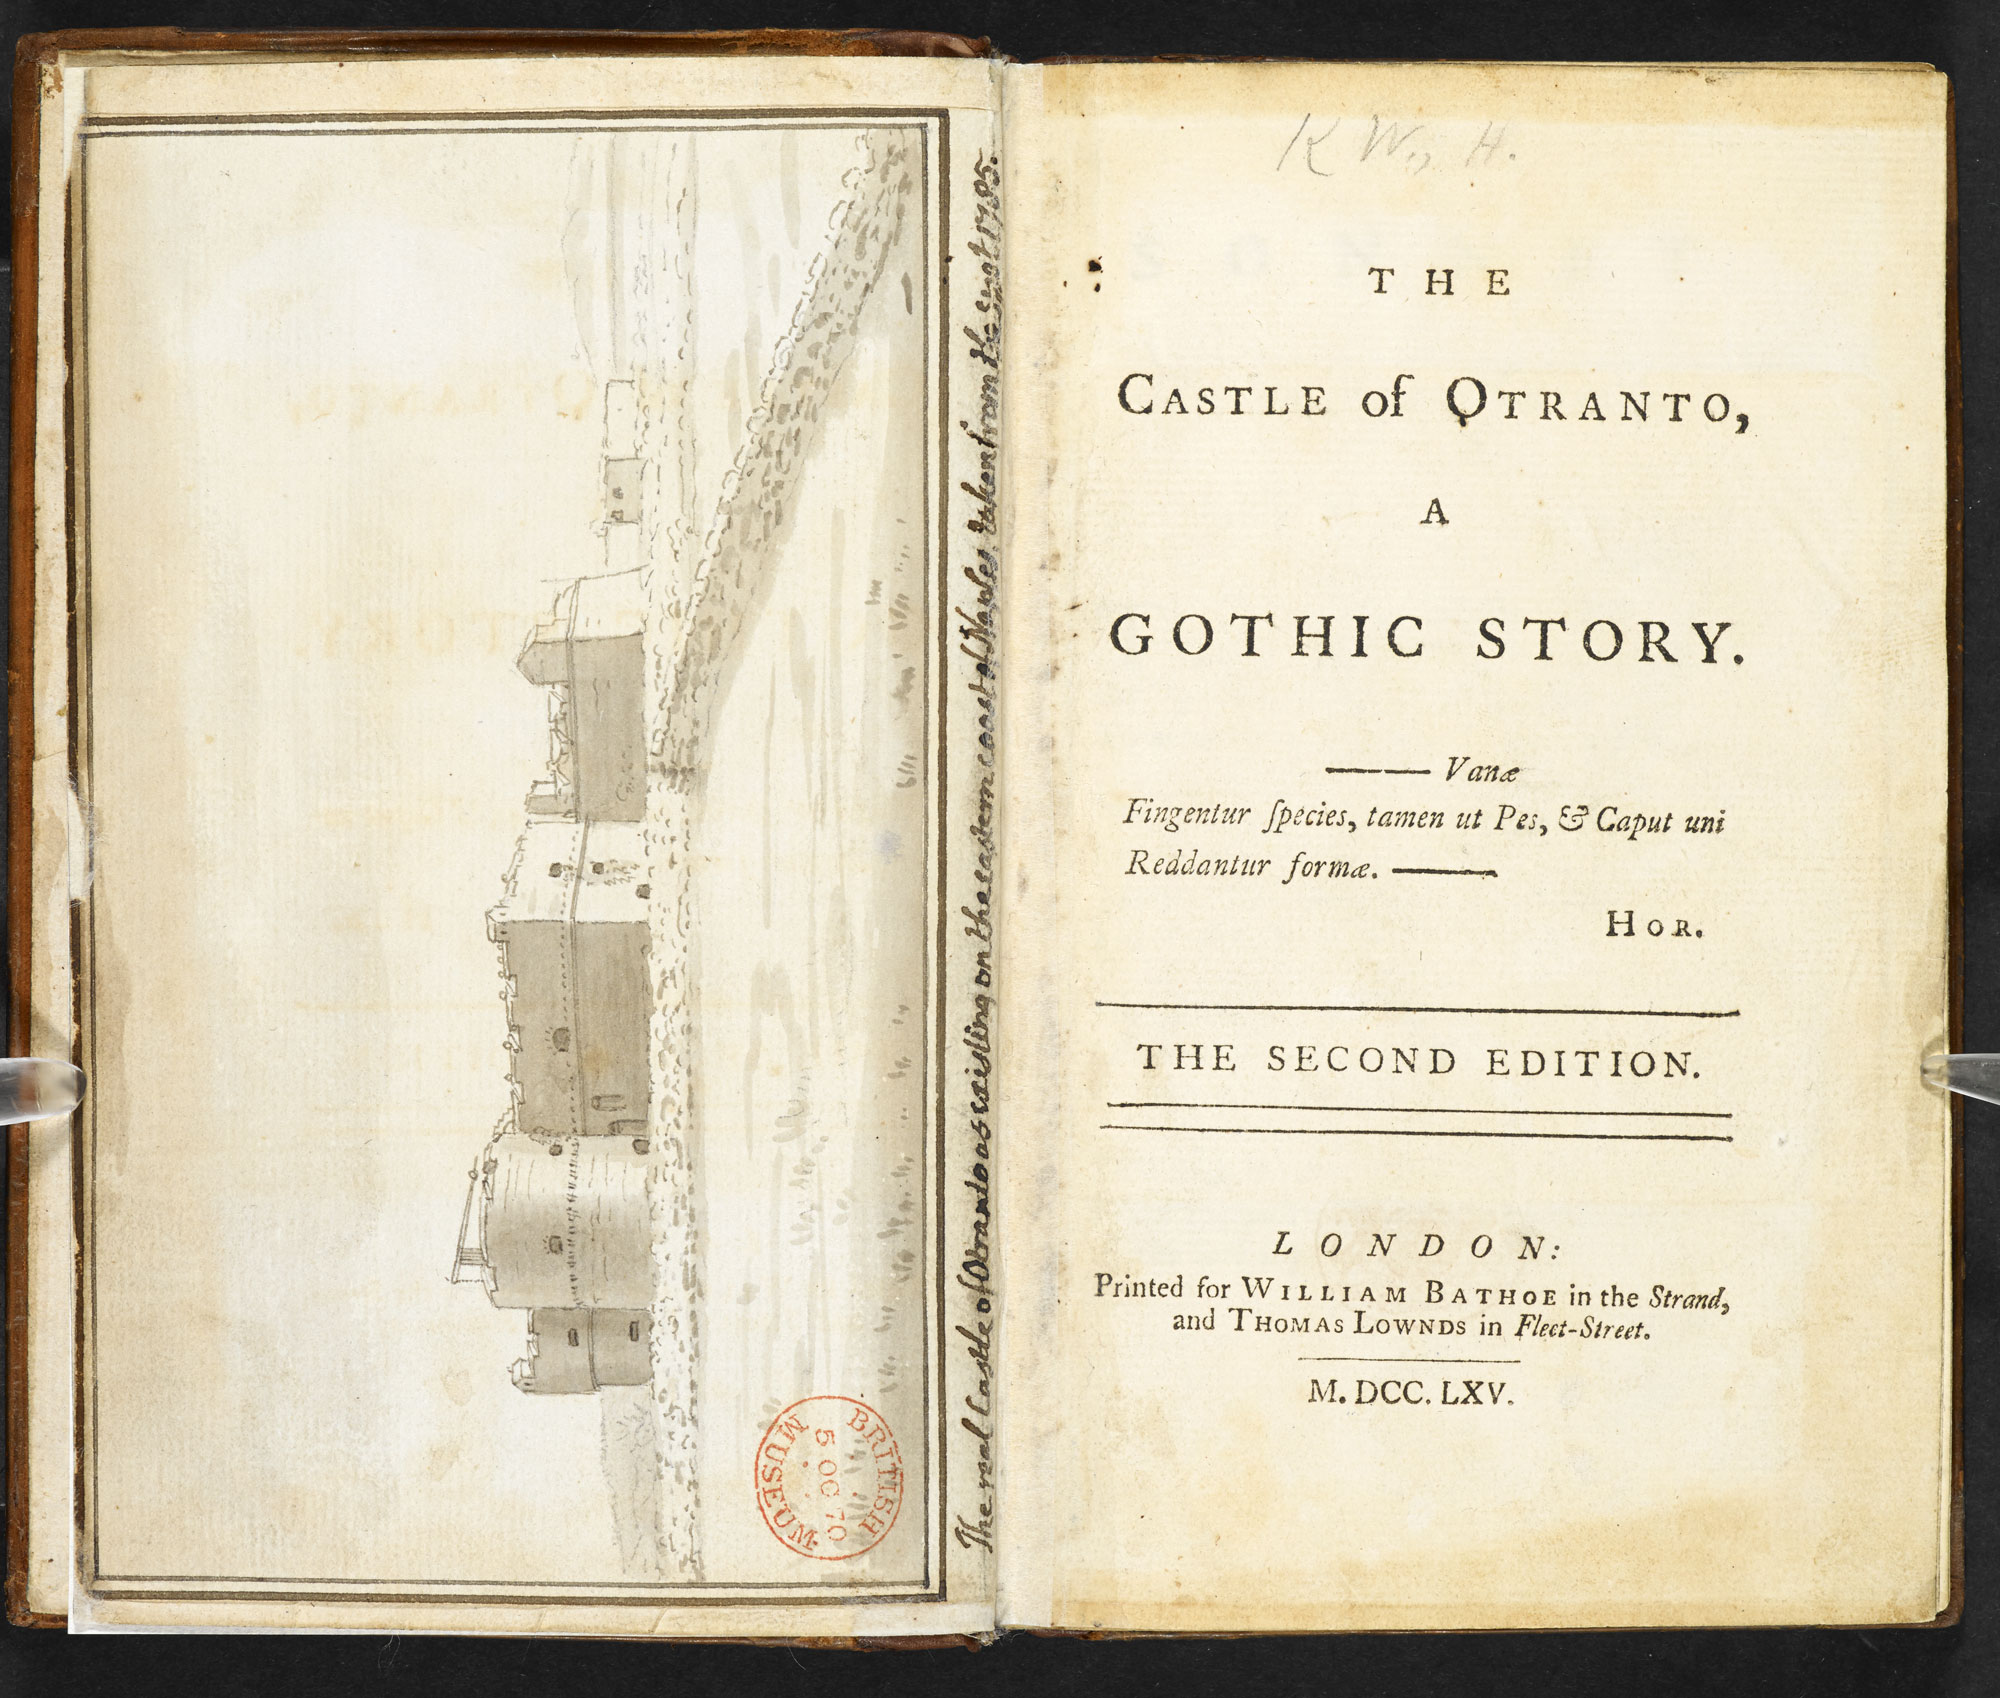 Gothic novel The Castle of Otranto, by Horace Walpole, with a watercolour drawing